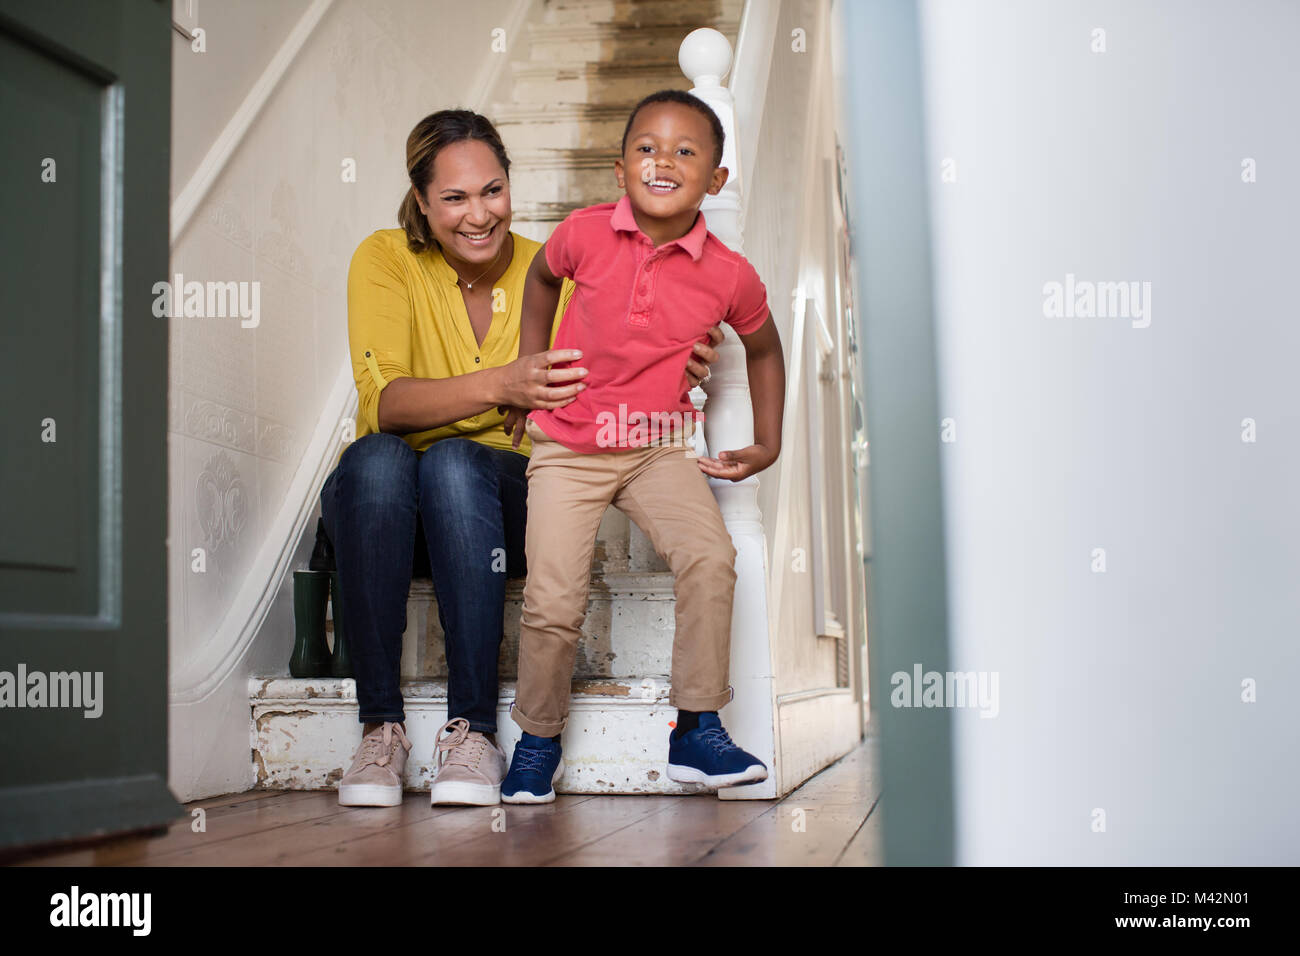 Boy excited to go to school - Stock Image